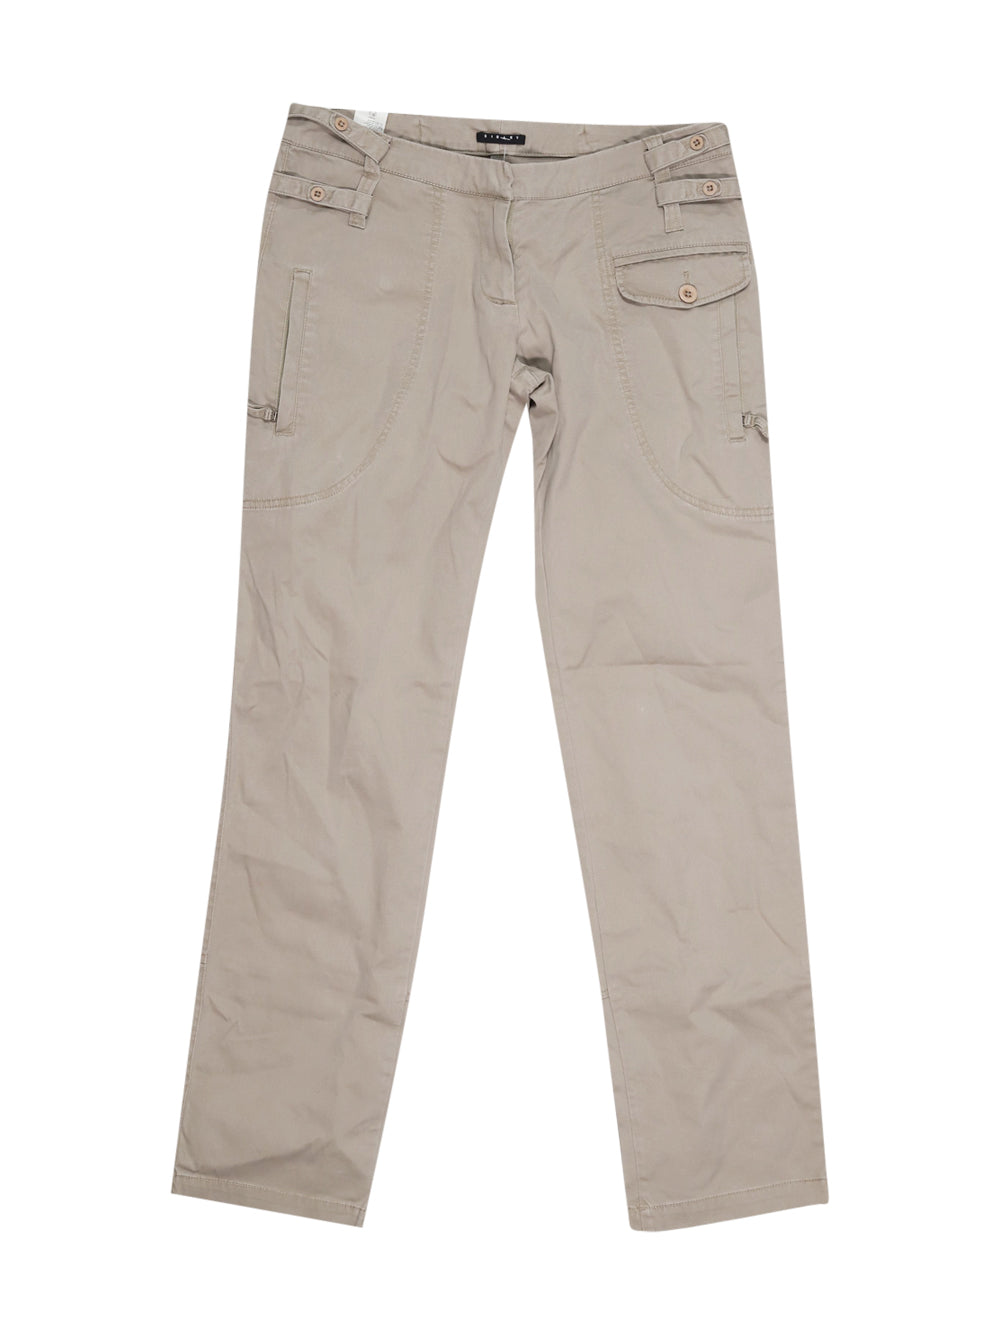 Front photo of Preloved Sisley Beige Woman's trousers - size 12/L